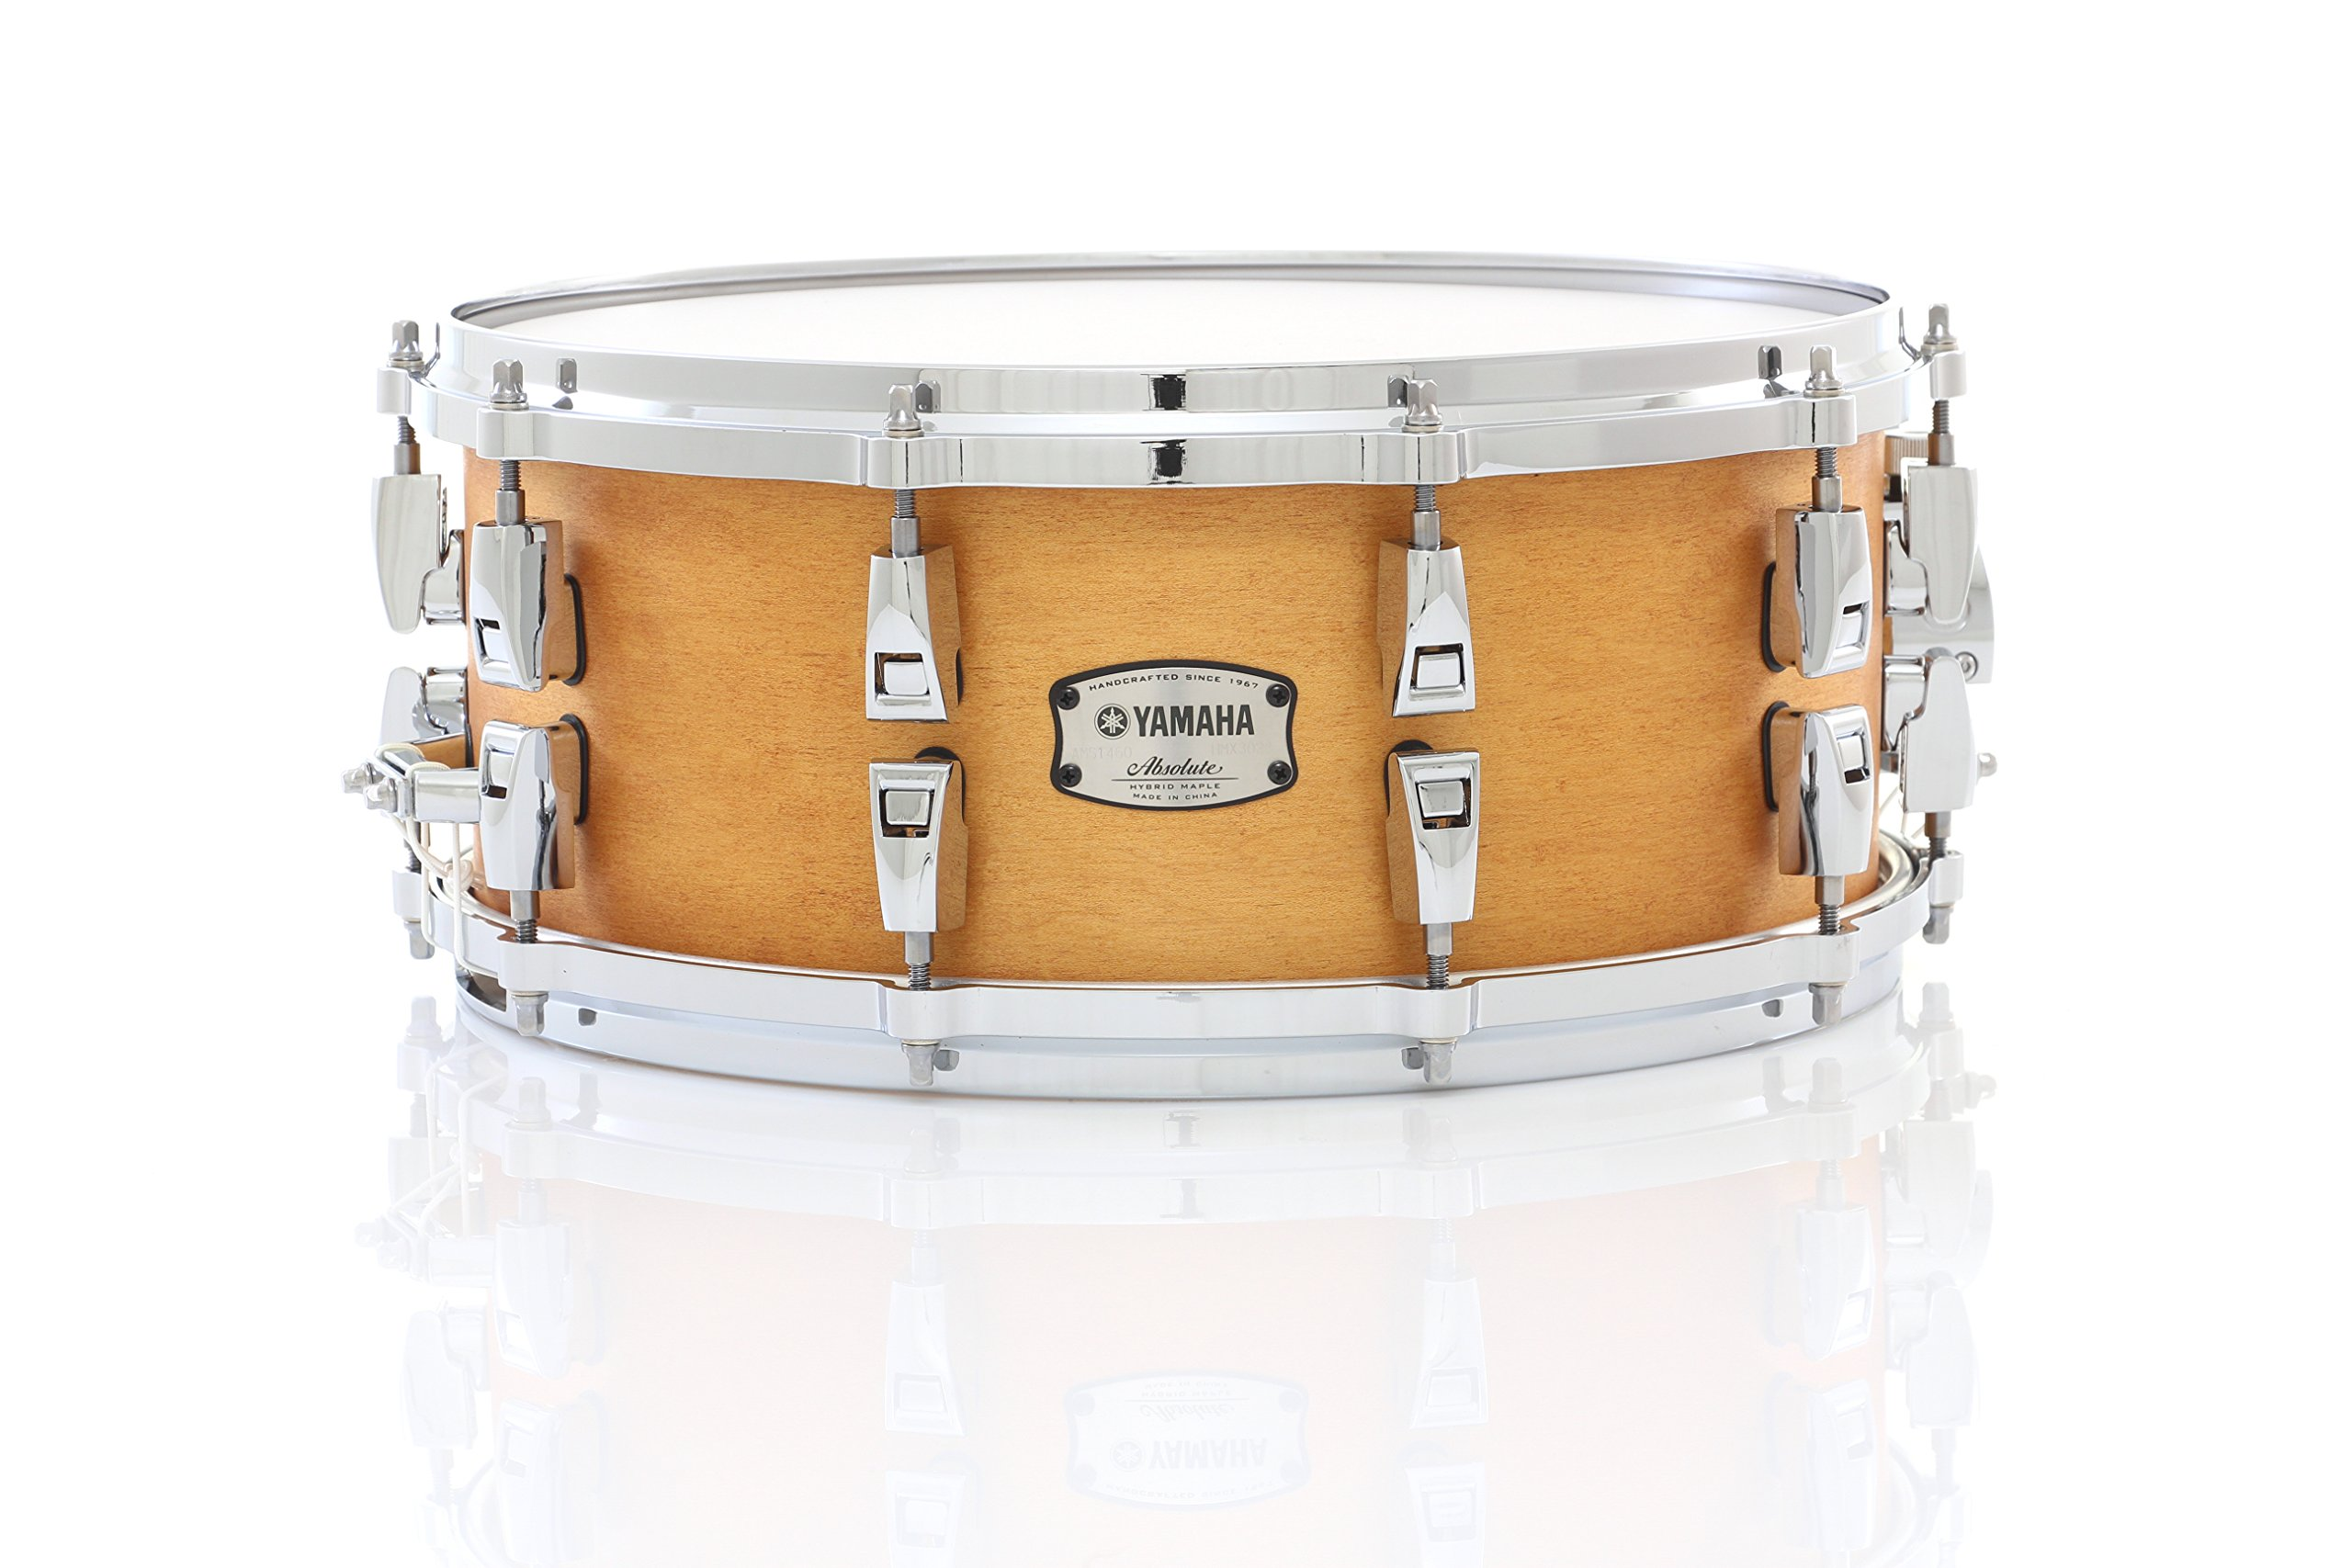 Yamaha Absolute Hybrid Maple Snare Drum 14 x 6 in. Vintage Natural by Yamaha